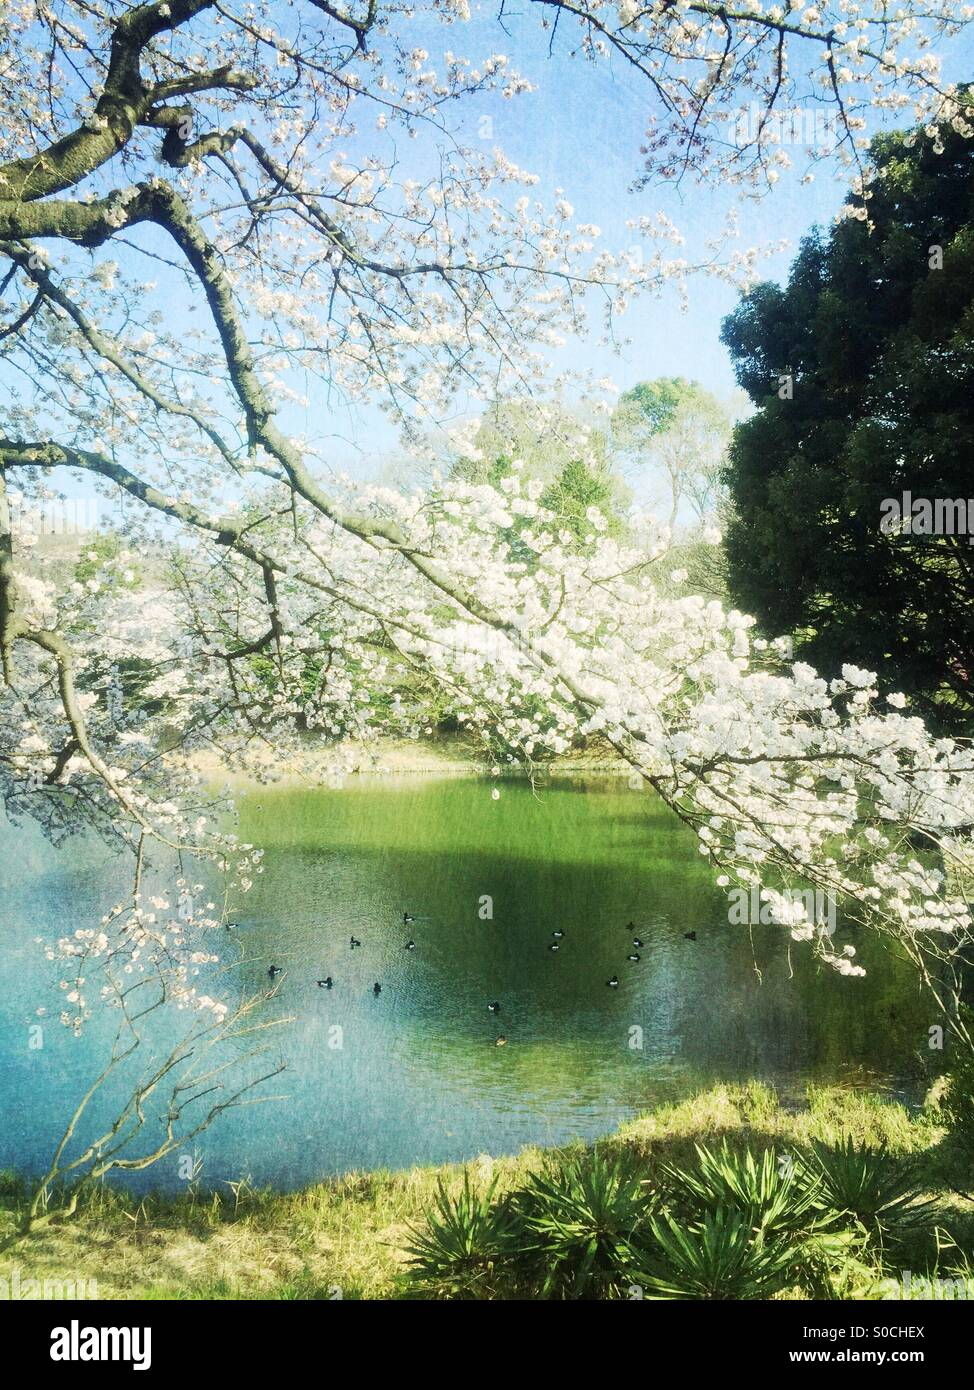 Lovely pond with ducks surrounded by white cherry blossoms. Vintage, painterly textures overlay for a fresh Spring - Stock Image